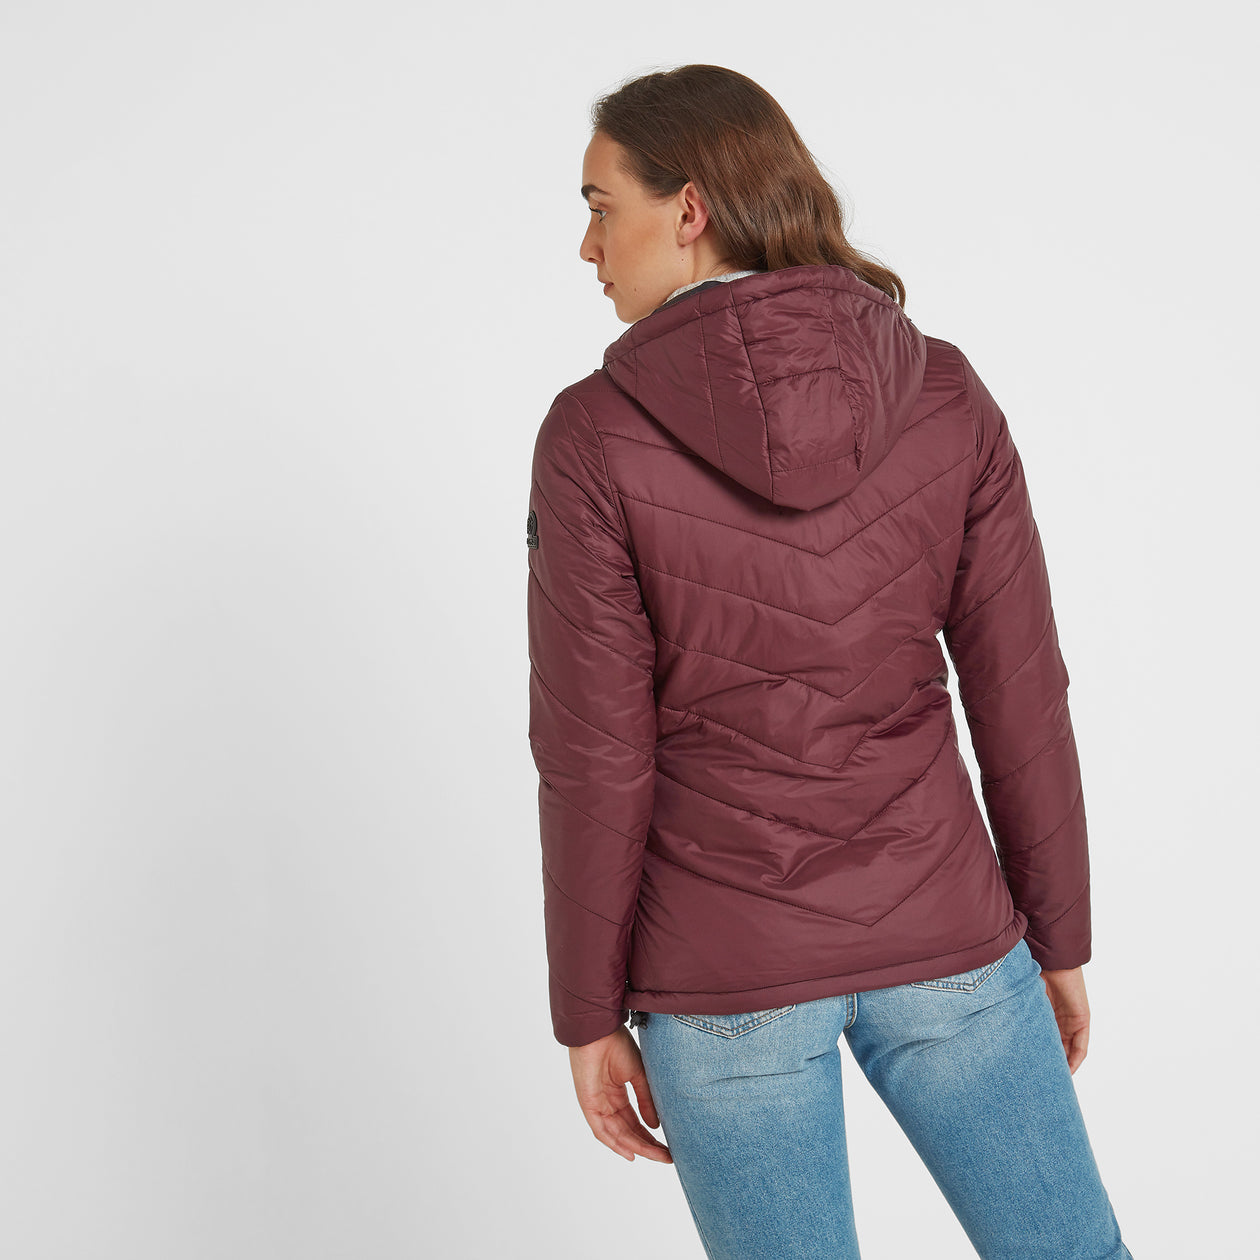 Clancy Womens TCZ Thermal Jacket - Deep Port image 4